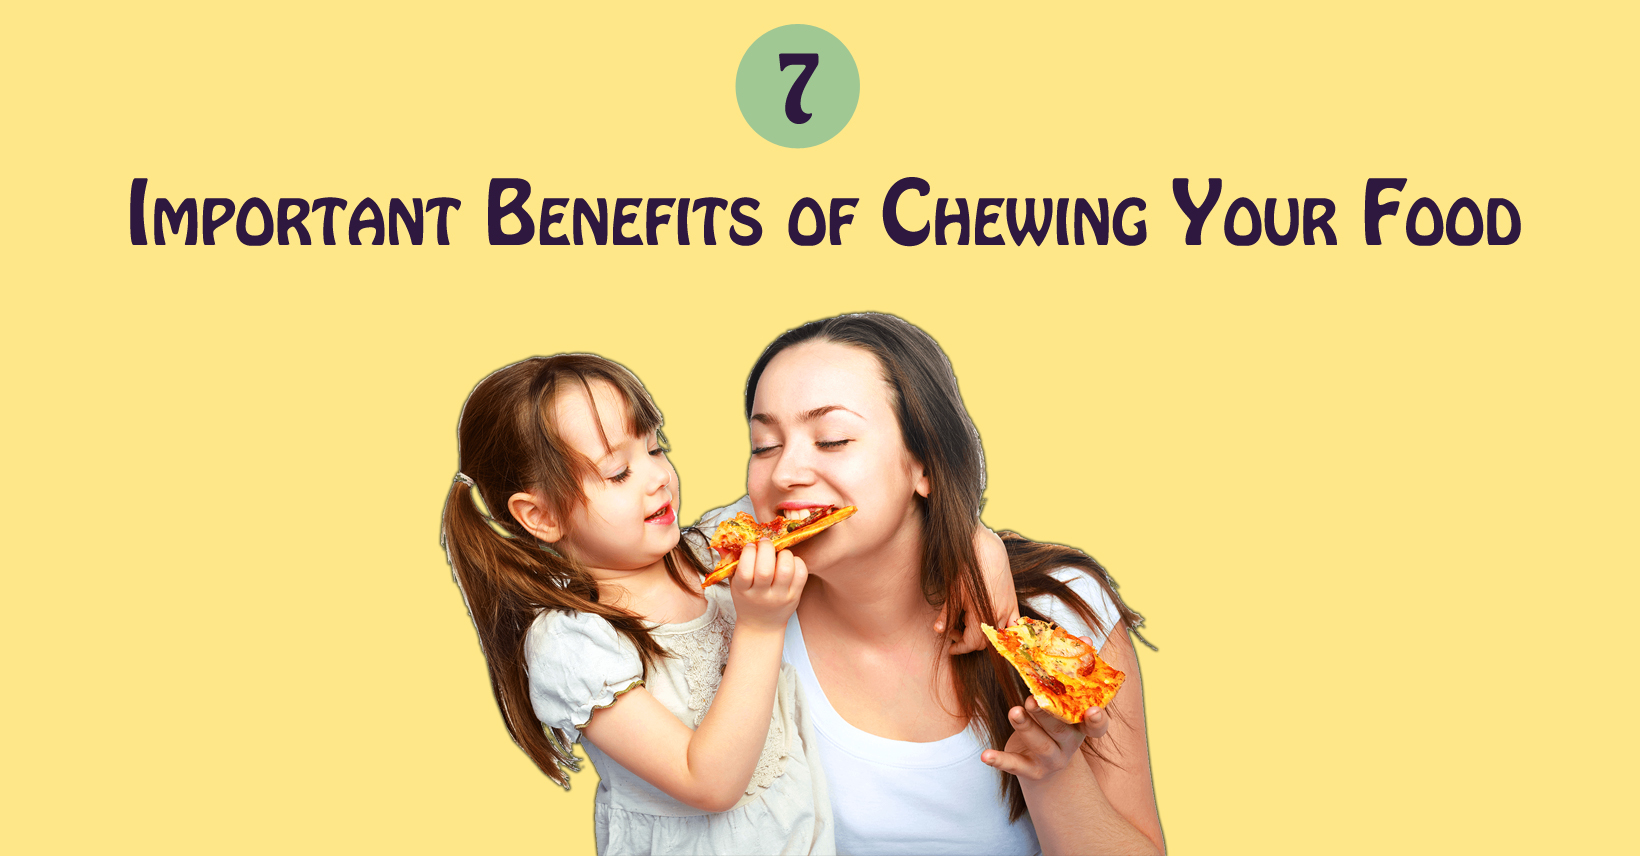 7 Important Benefits of Chewing Your Food (1)